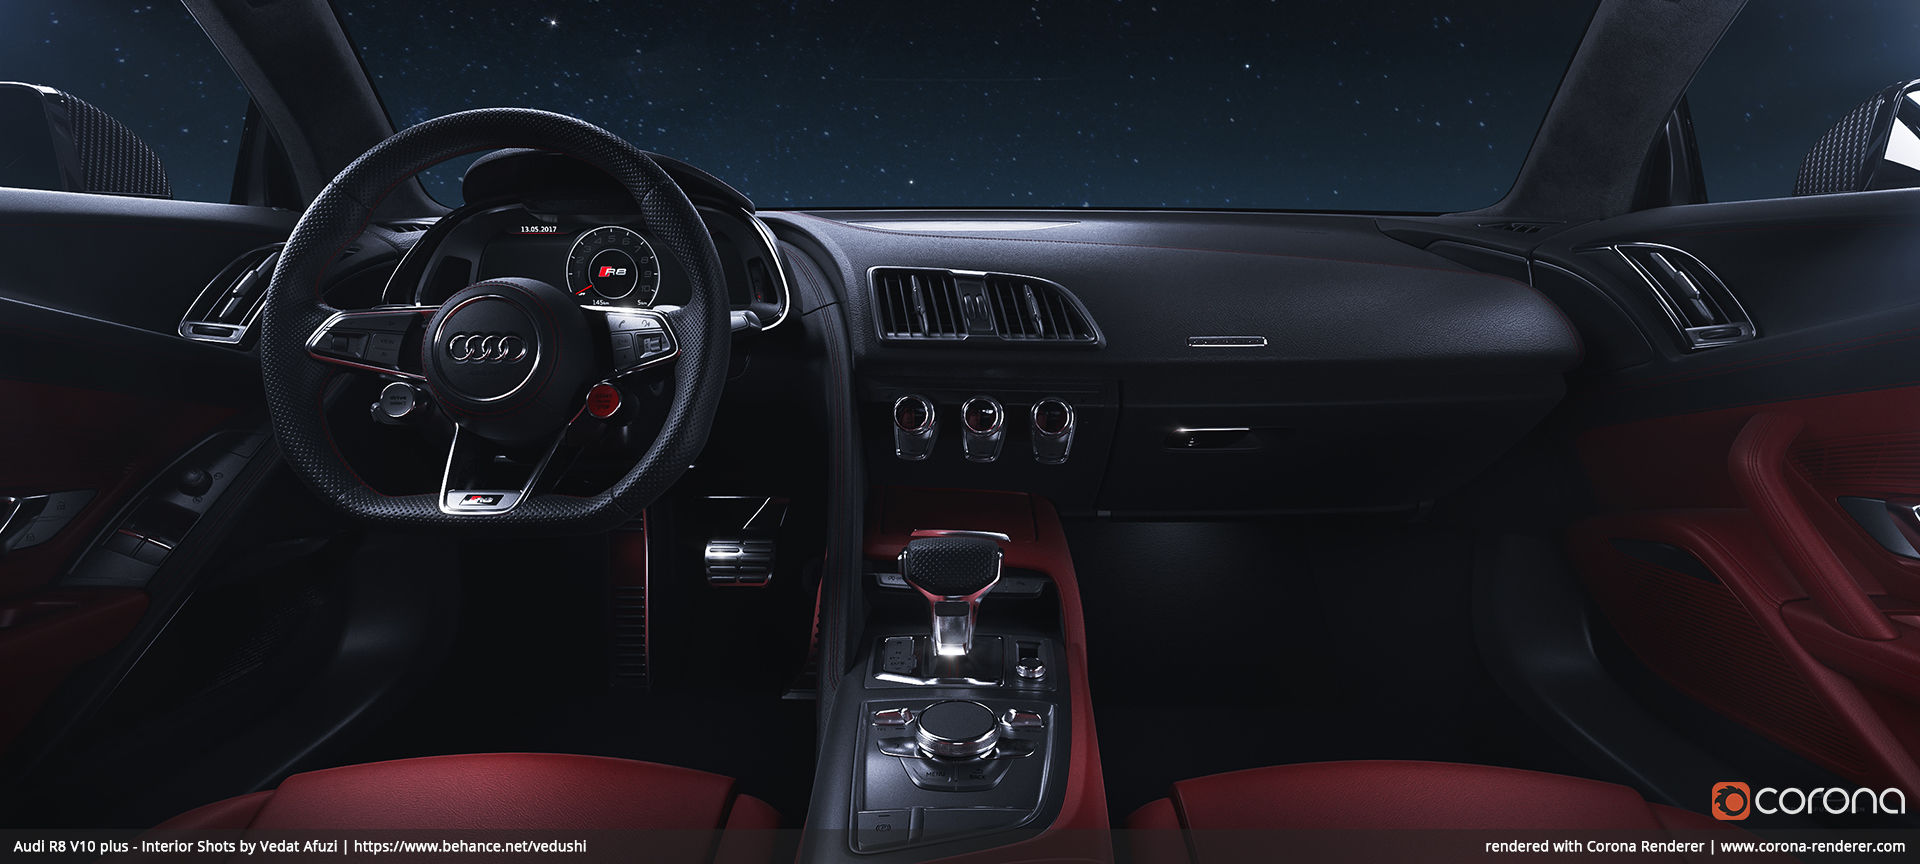 Audi R8 V10 plus - Interior Shot 03 by Vedat Afuzi ...